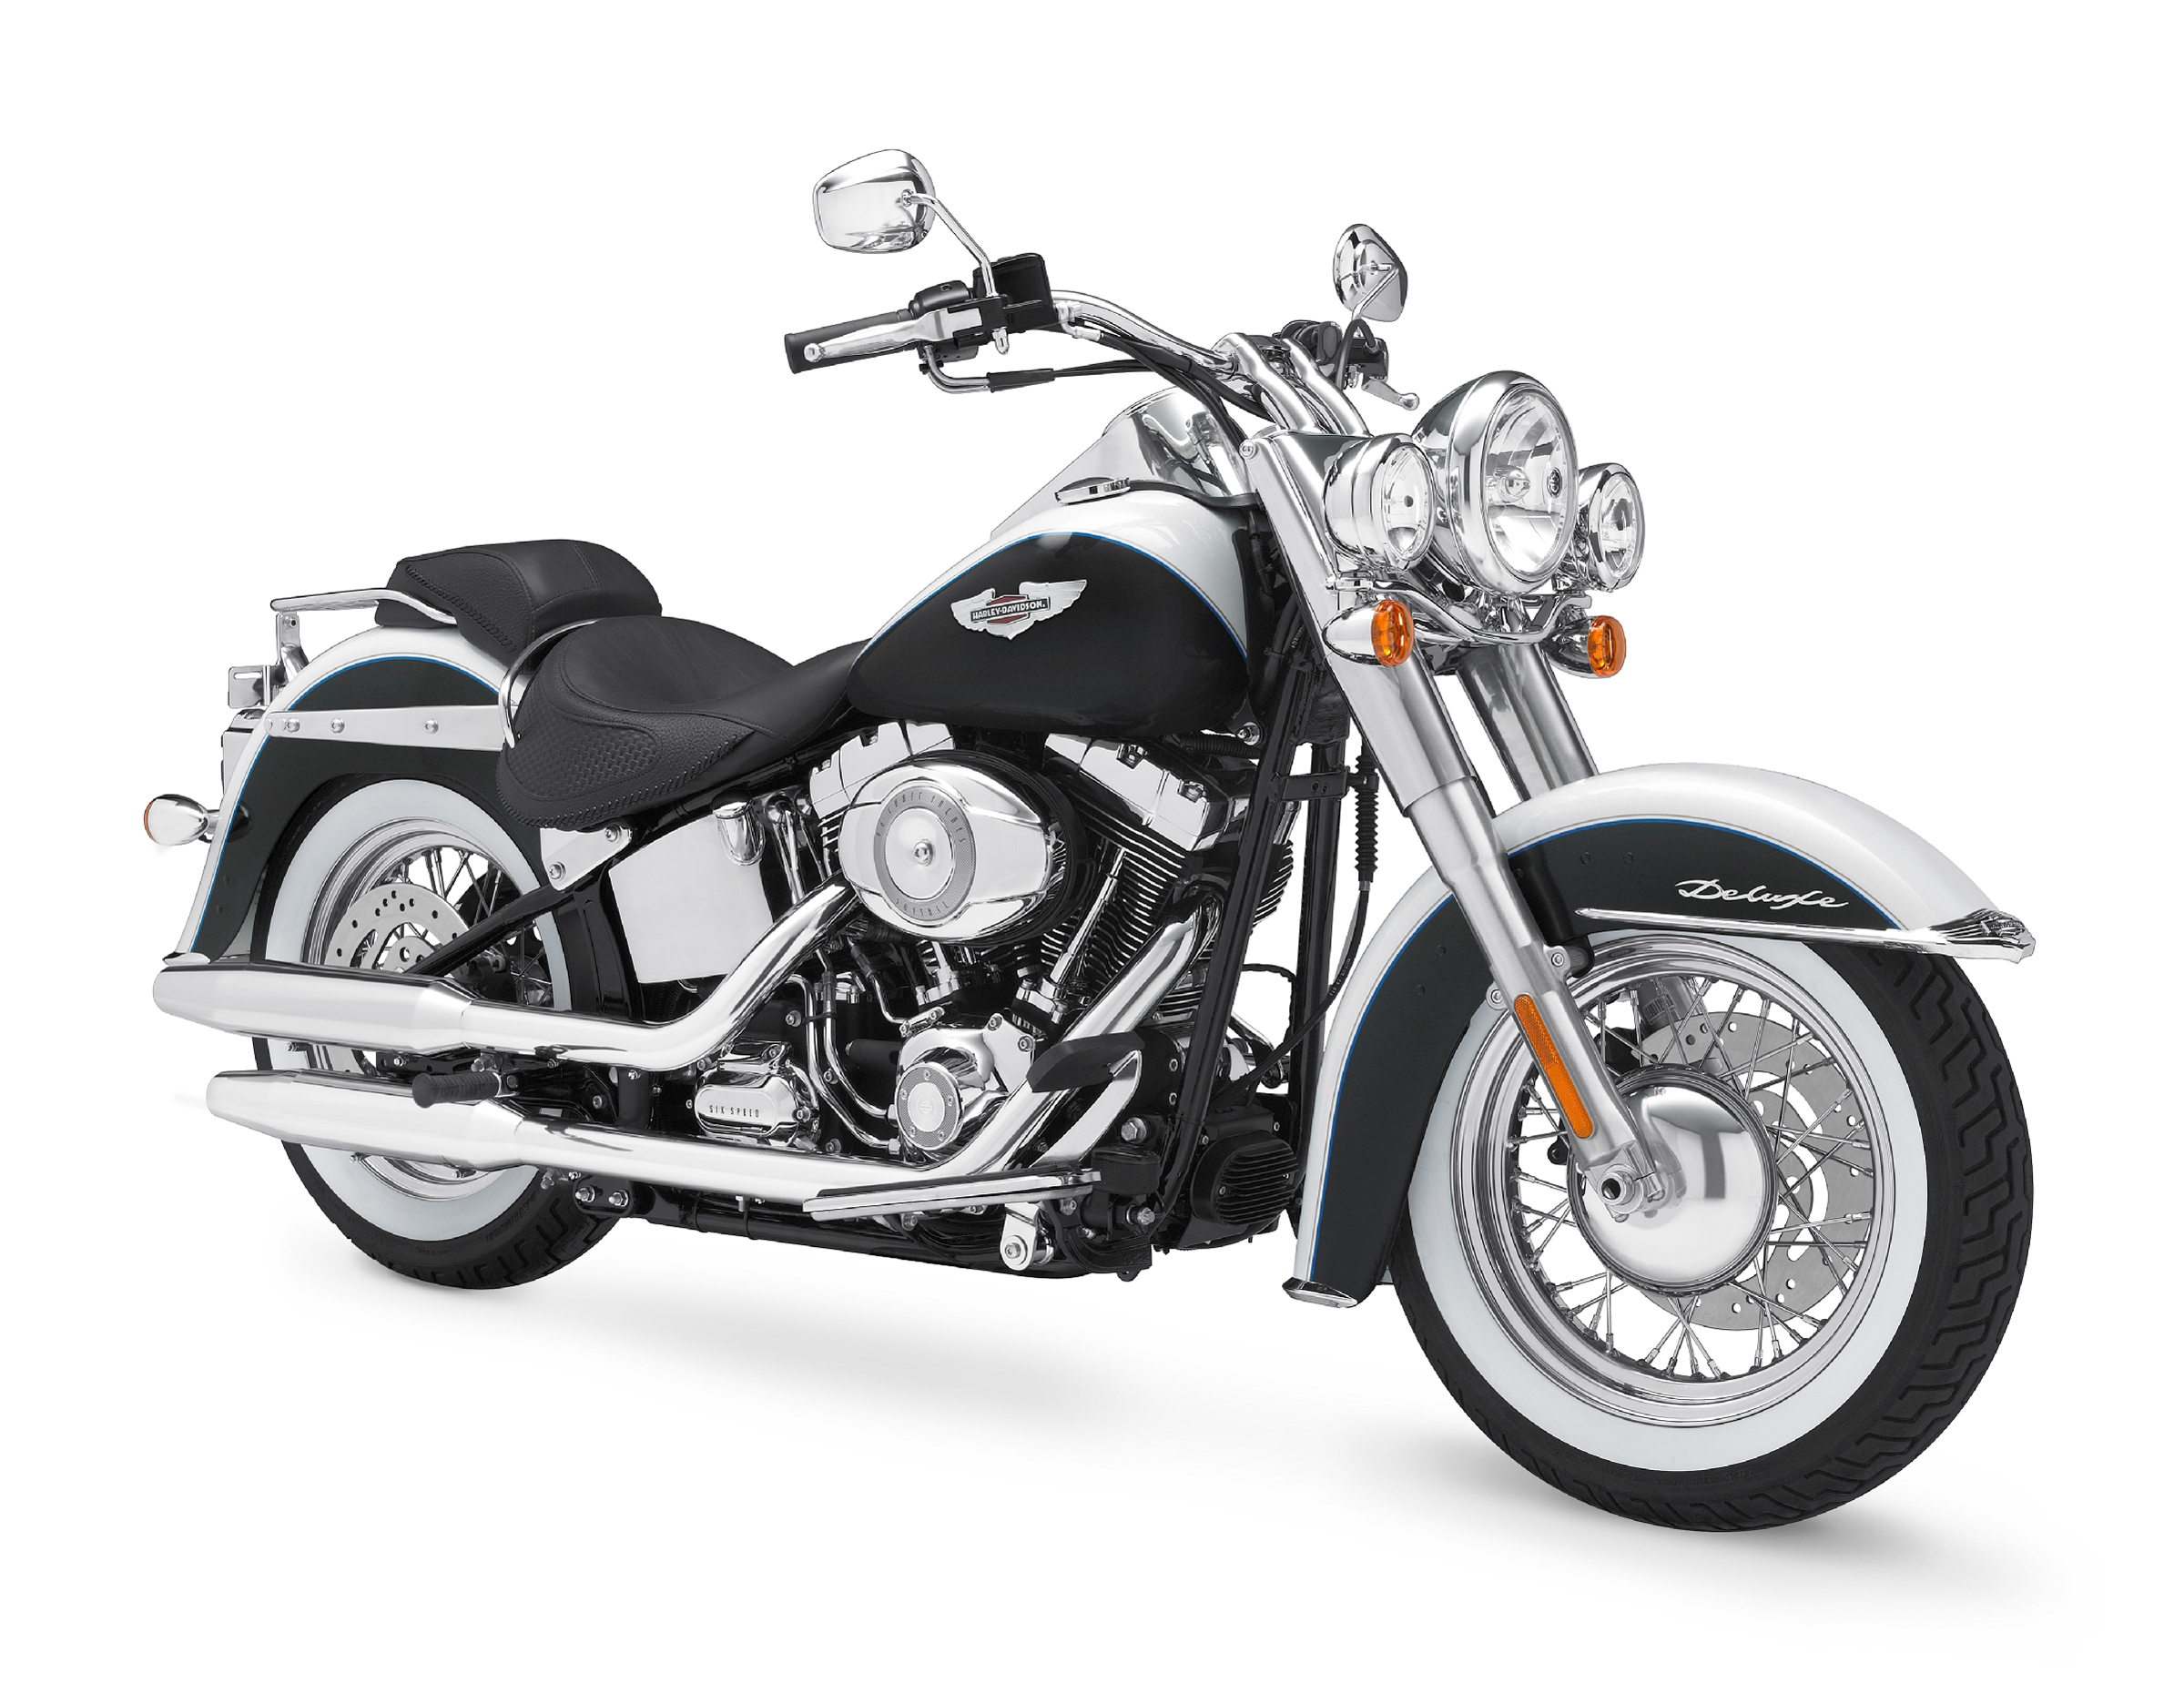 2009 harley davidson flstn softail deluxe top speed. Black Bedroom Furniture Sets. Home Design Ideas